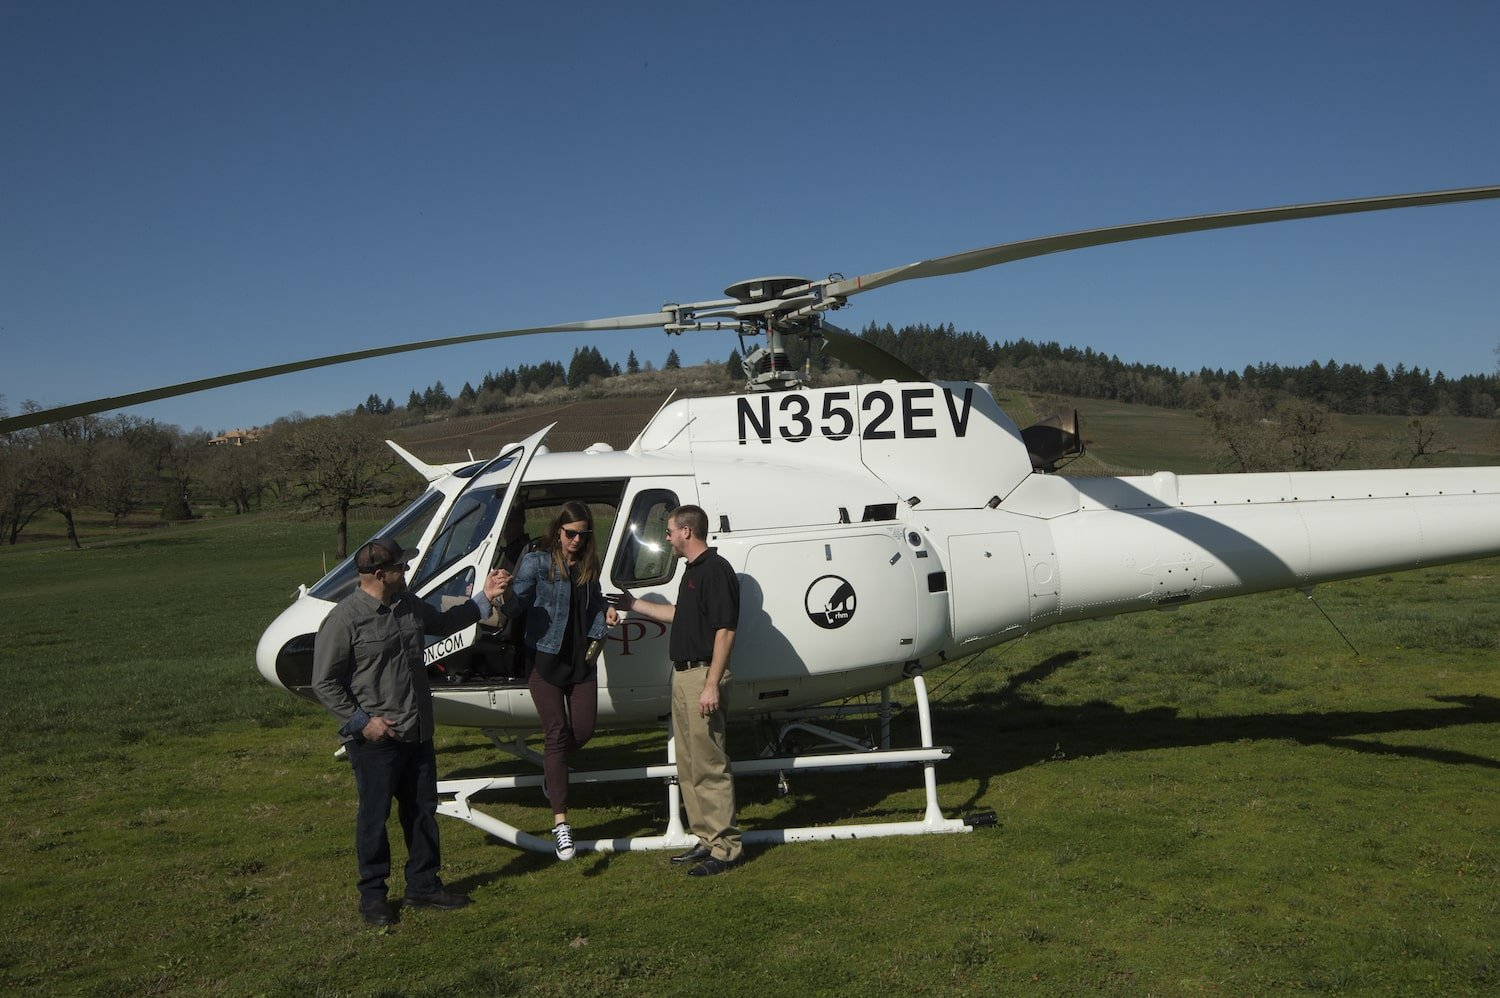 Wine tasting group with Tour DeVine disembarking from helicopter